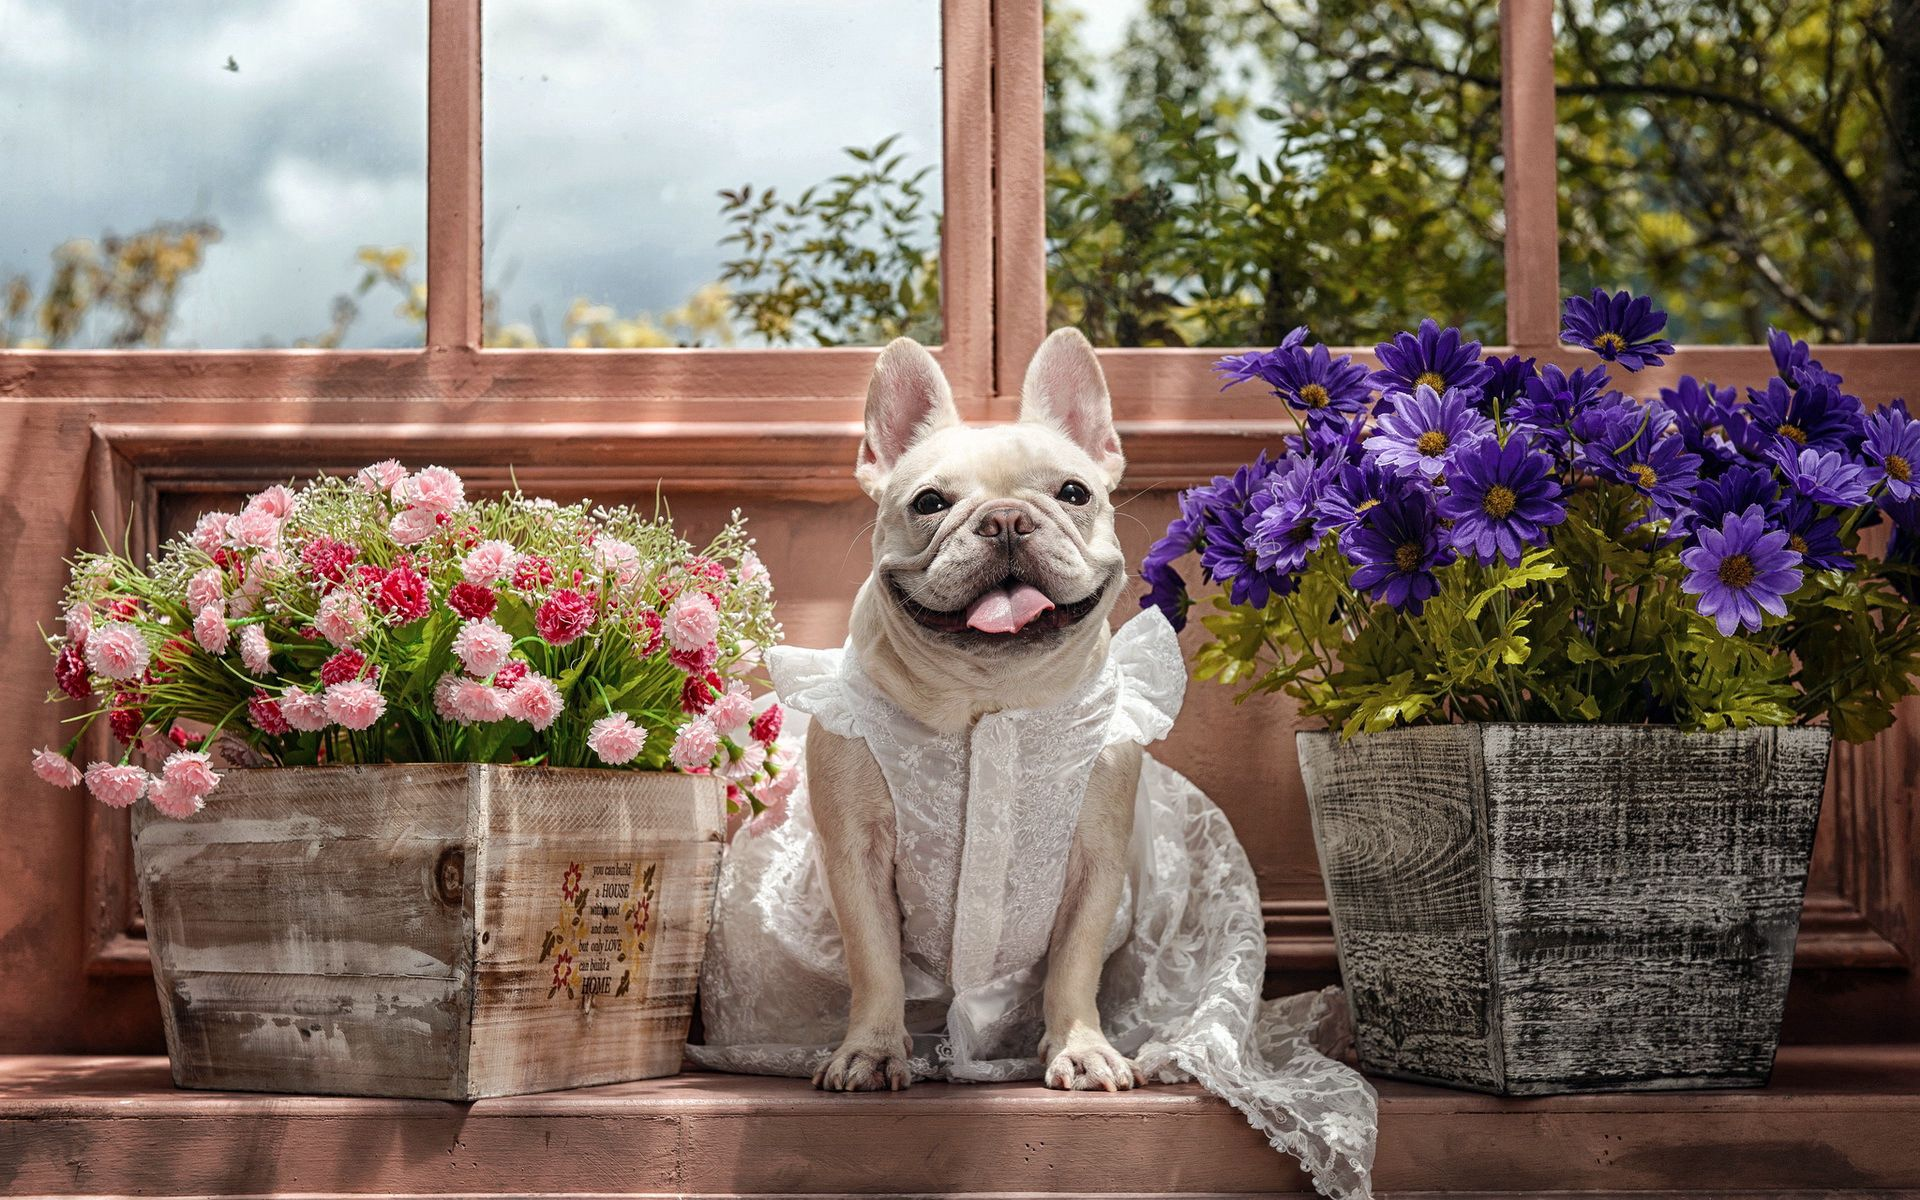 77625 download wallpaper Animals, Dog, Bulldog, Dress, Language, Tongue, Sight, Opinion, Flowers screensavers and pictures for free